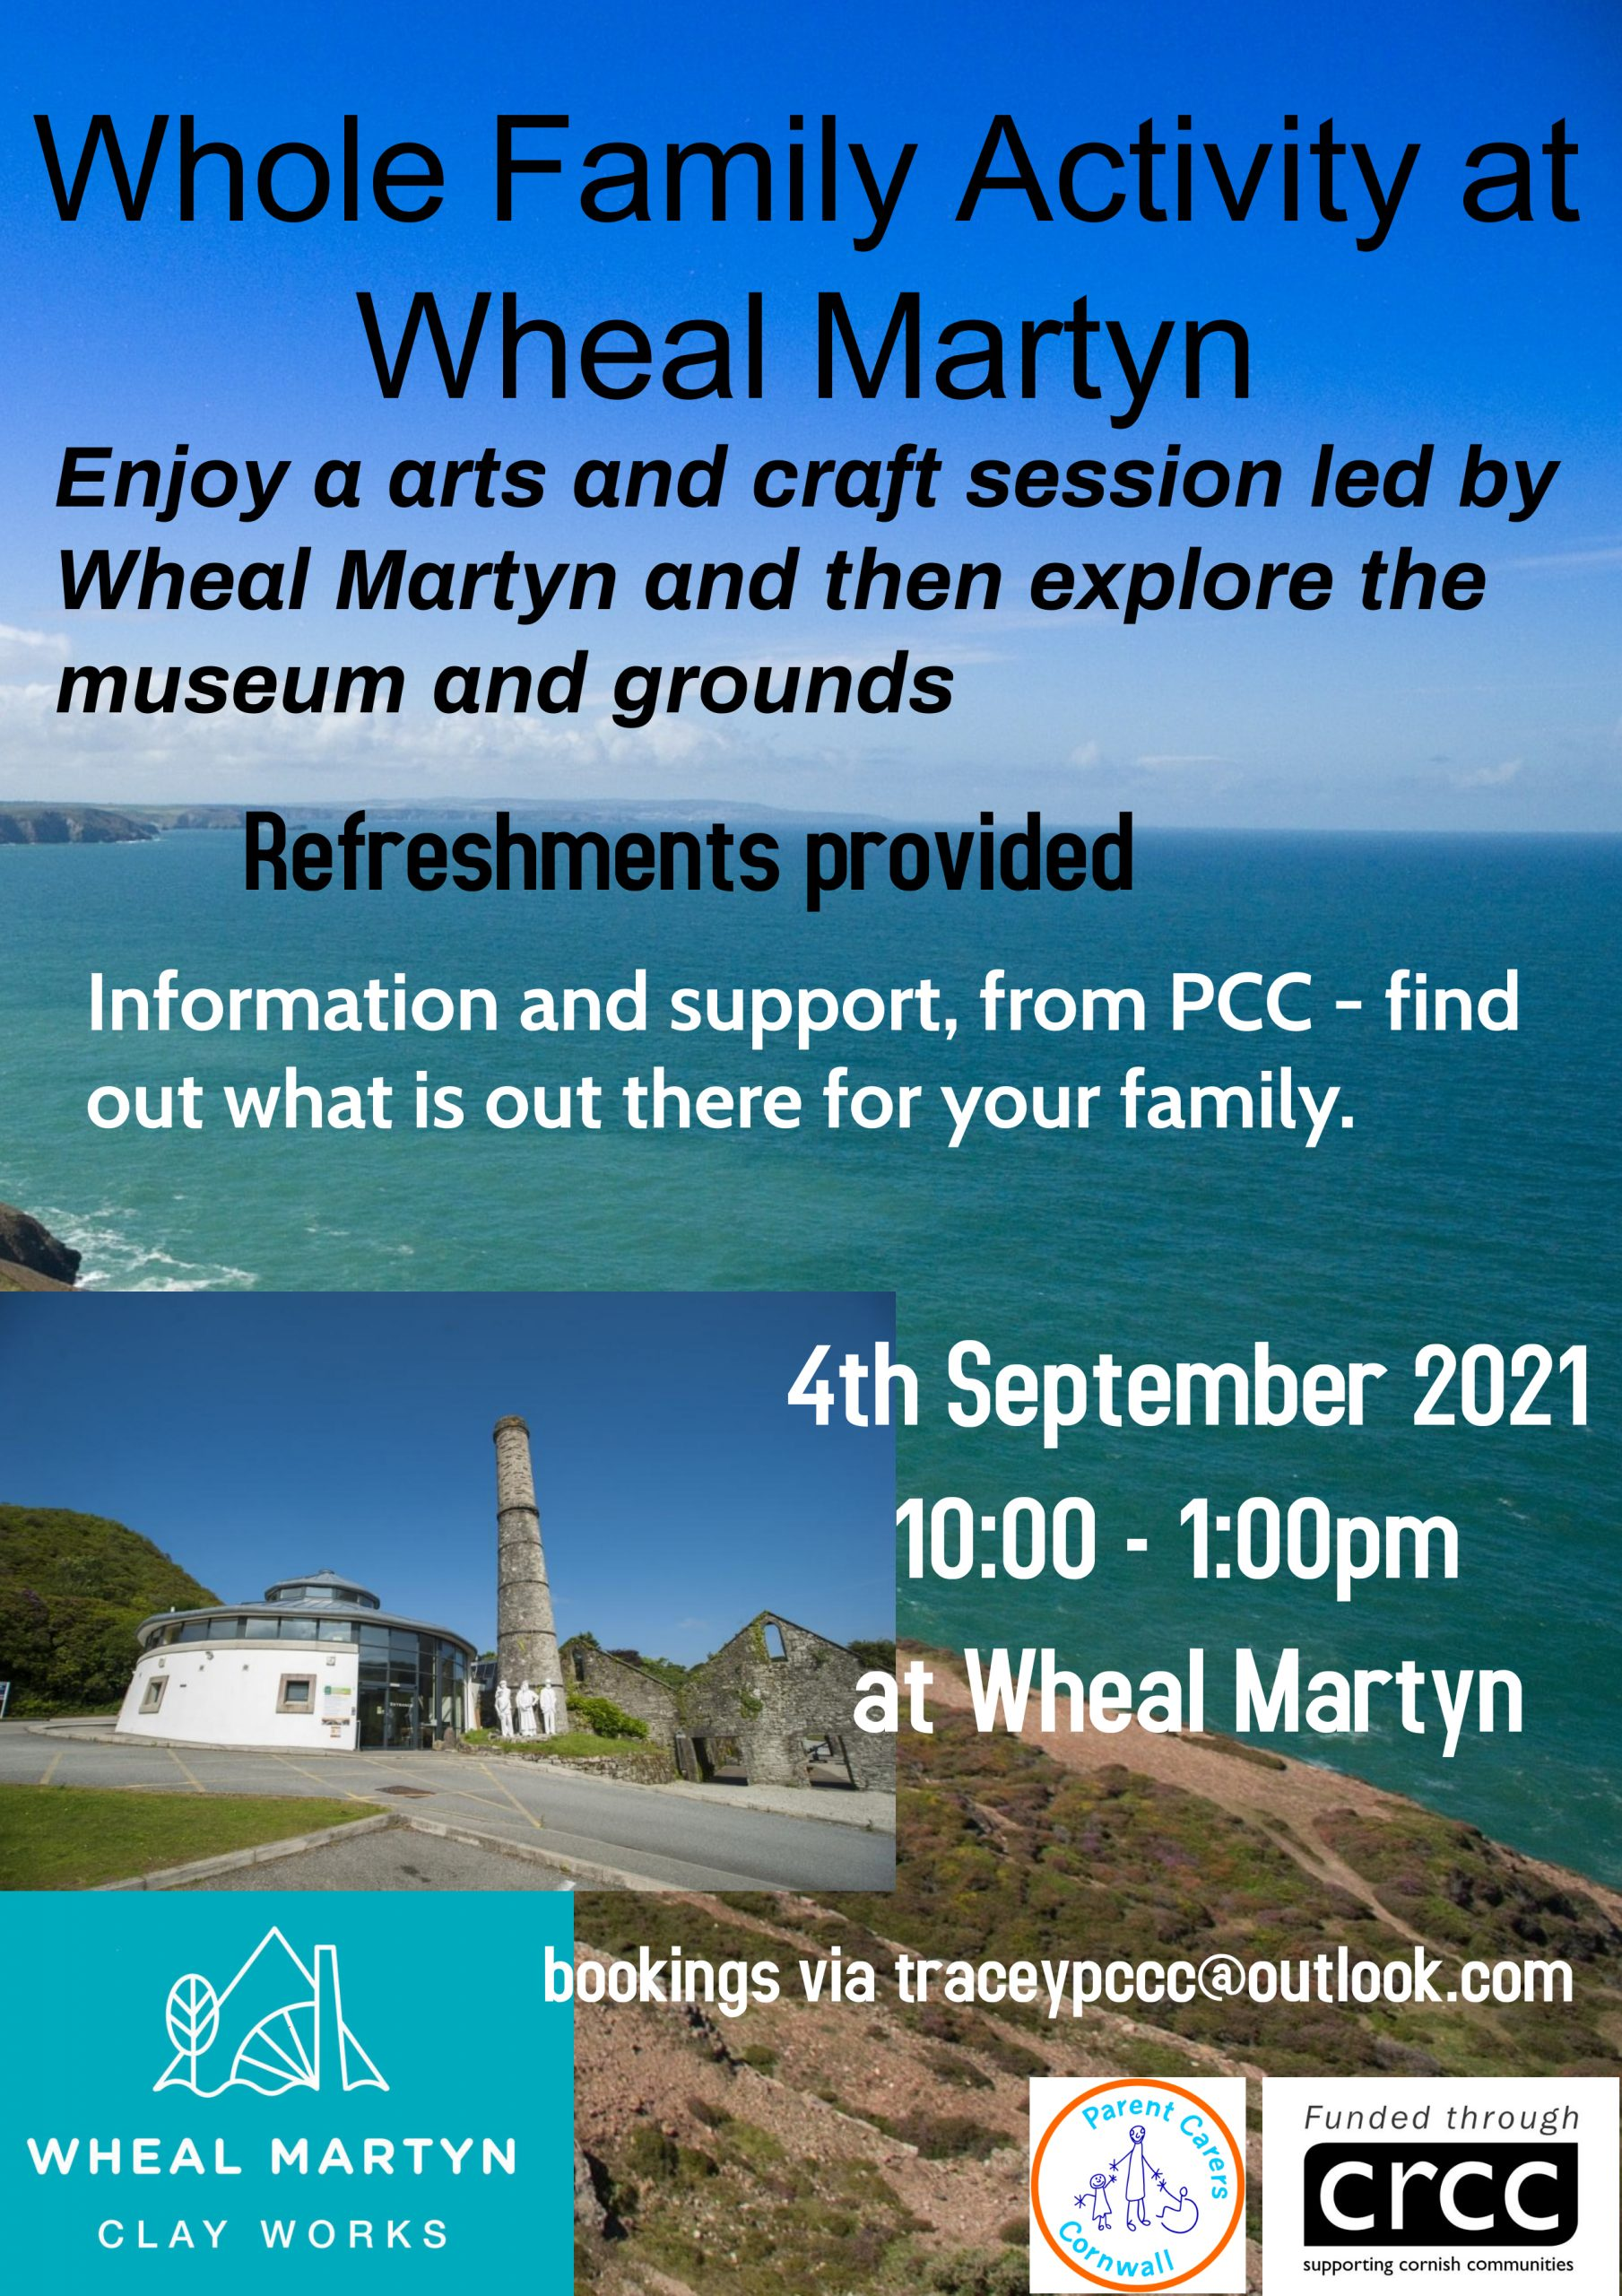 Together for Families PCC activity at Wheal Martyn